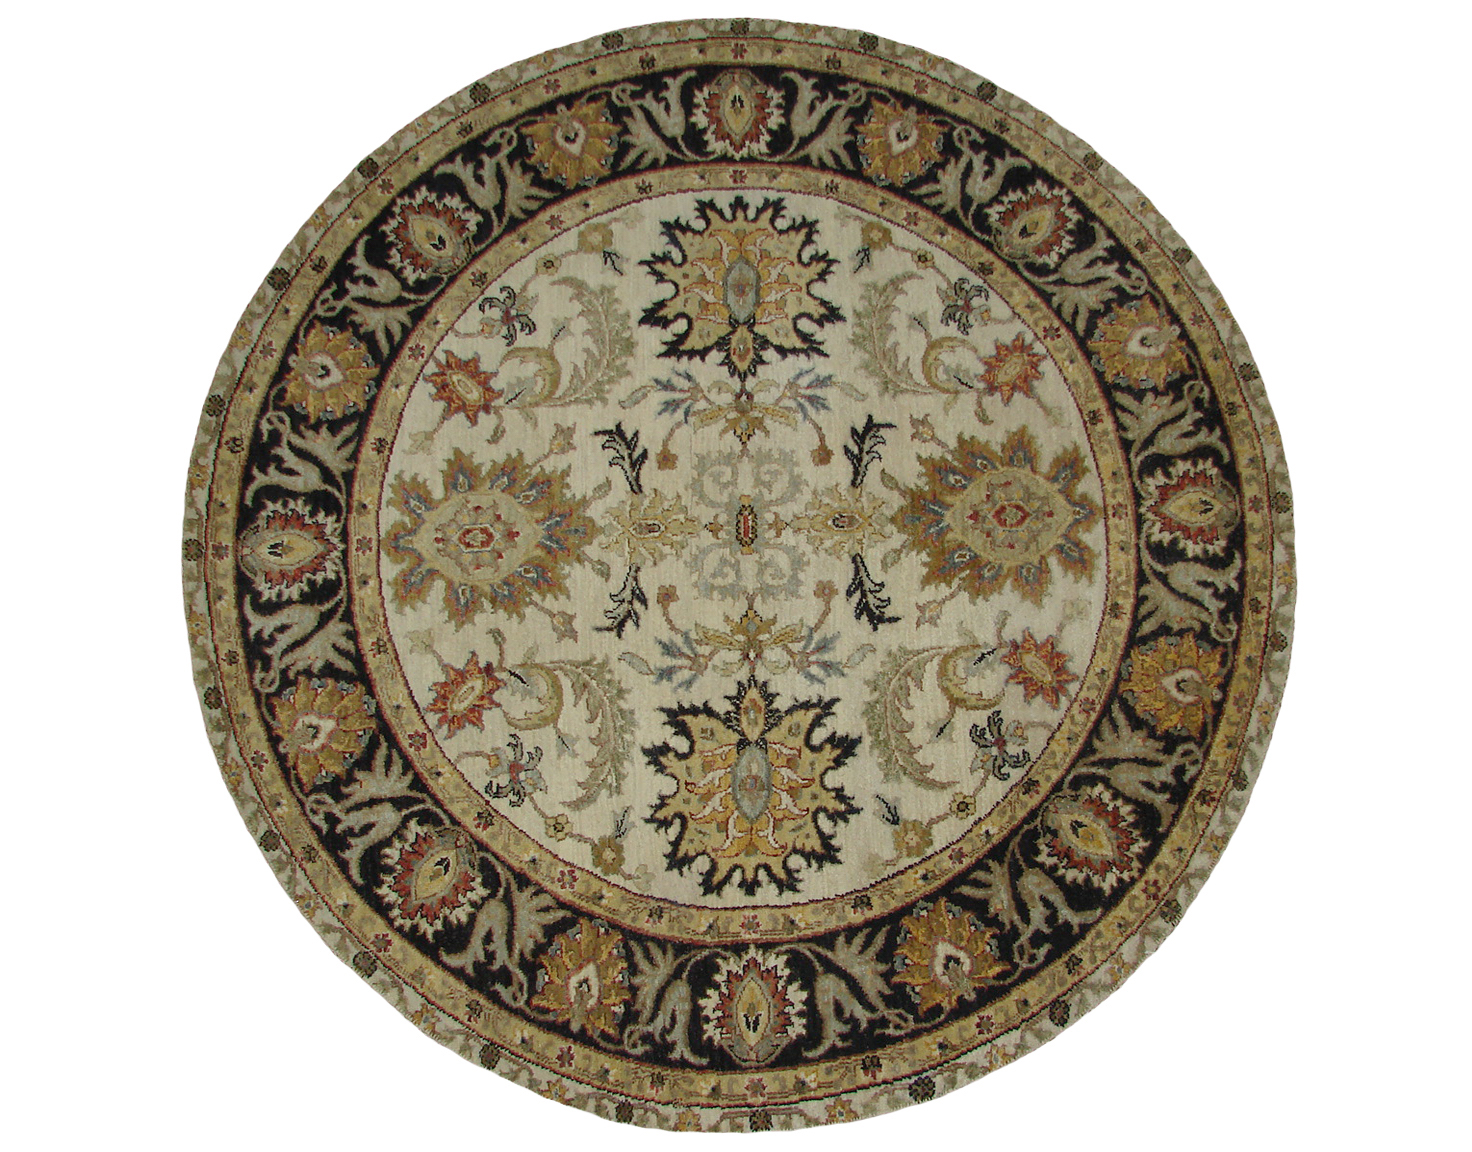 5 Round & Square Traditional Hand Knotted Wool Area Rug - MR19841